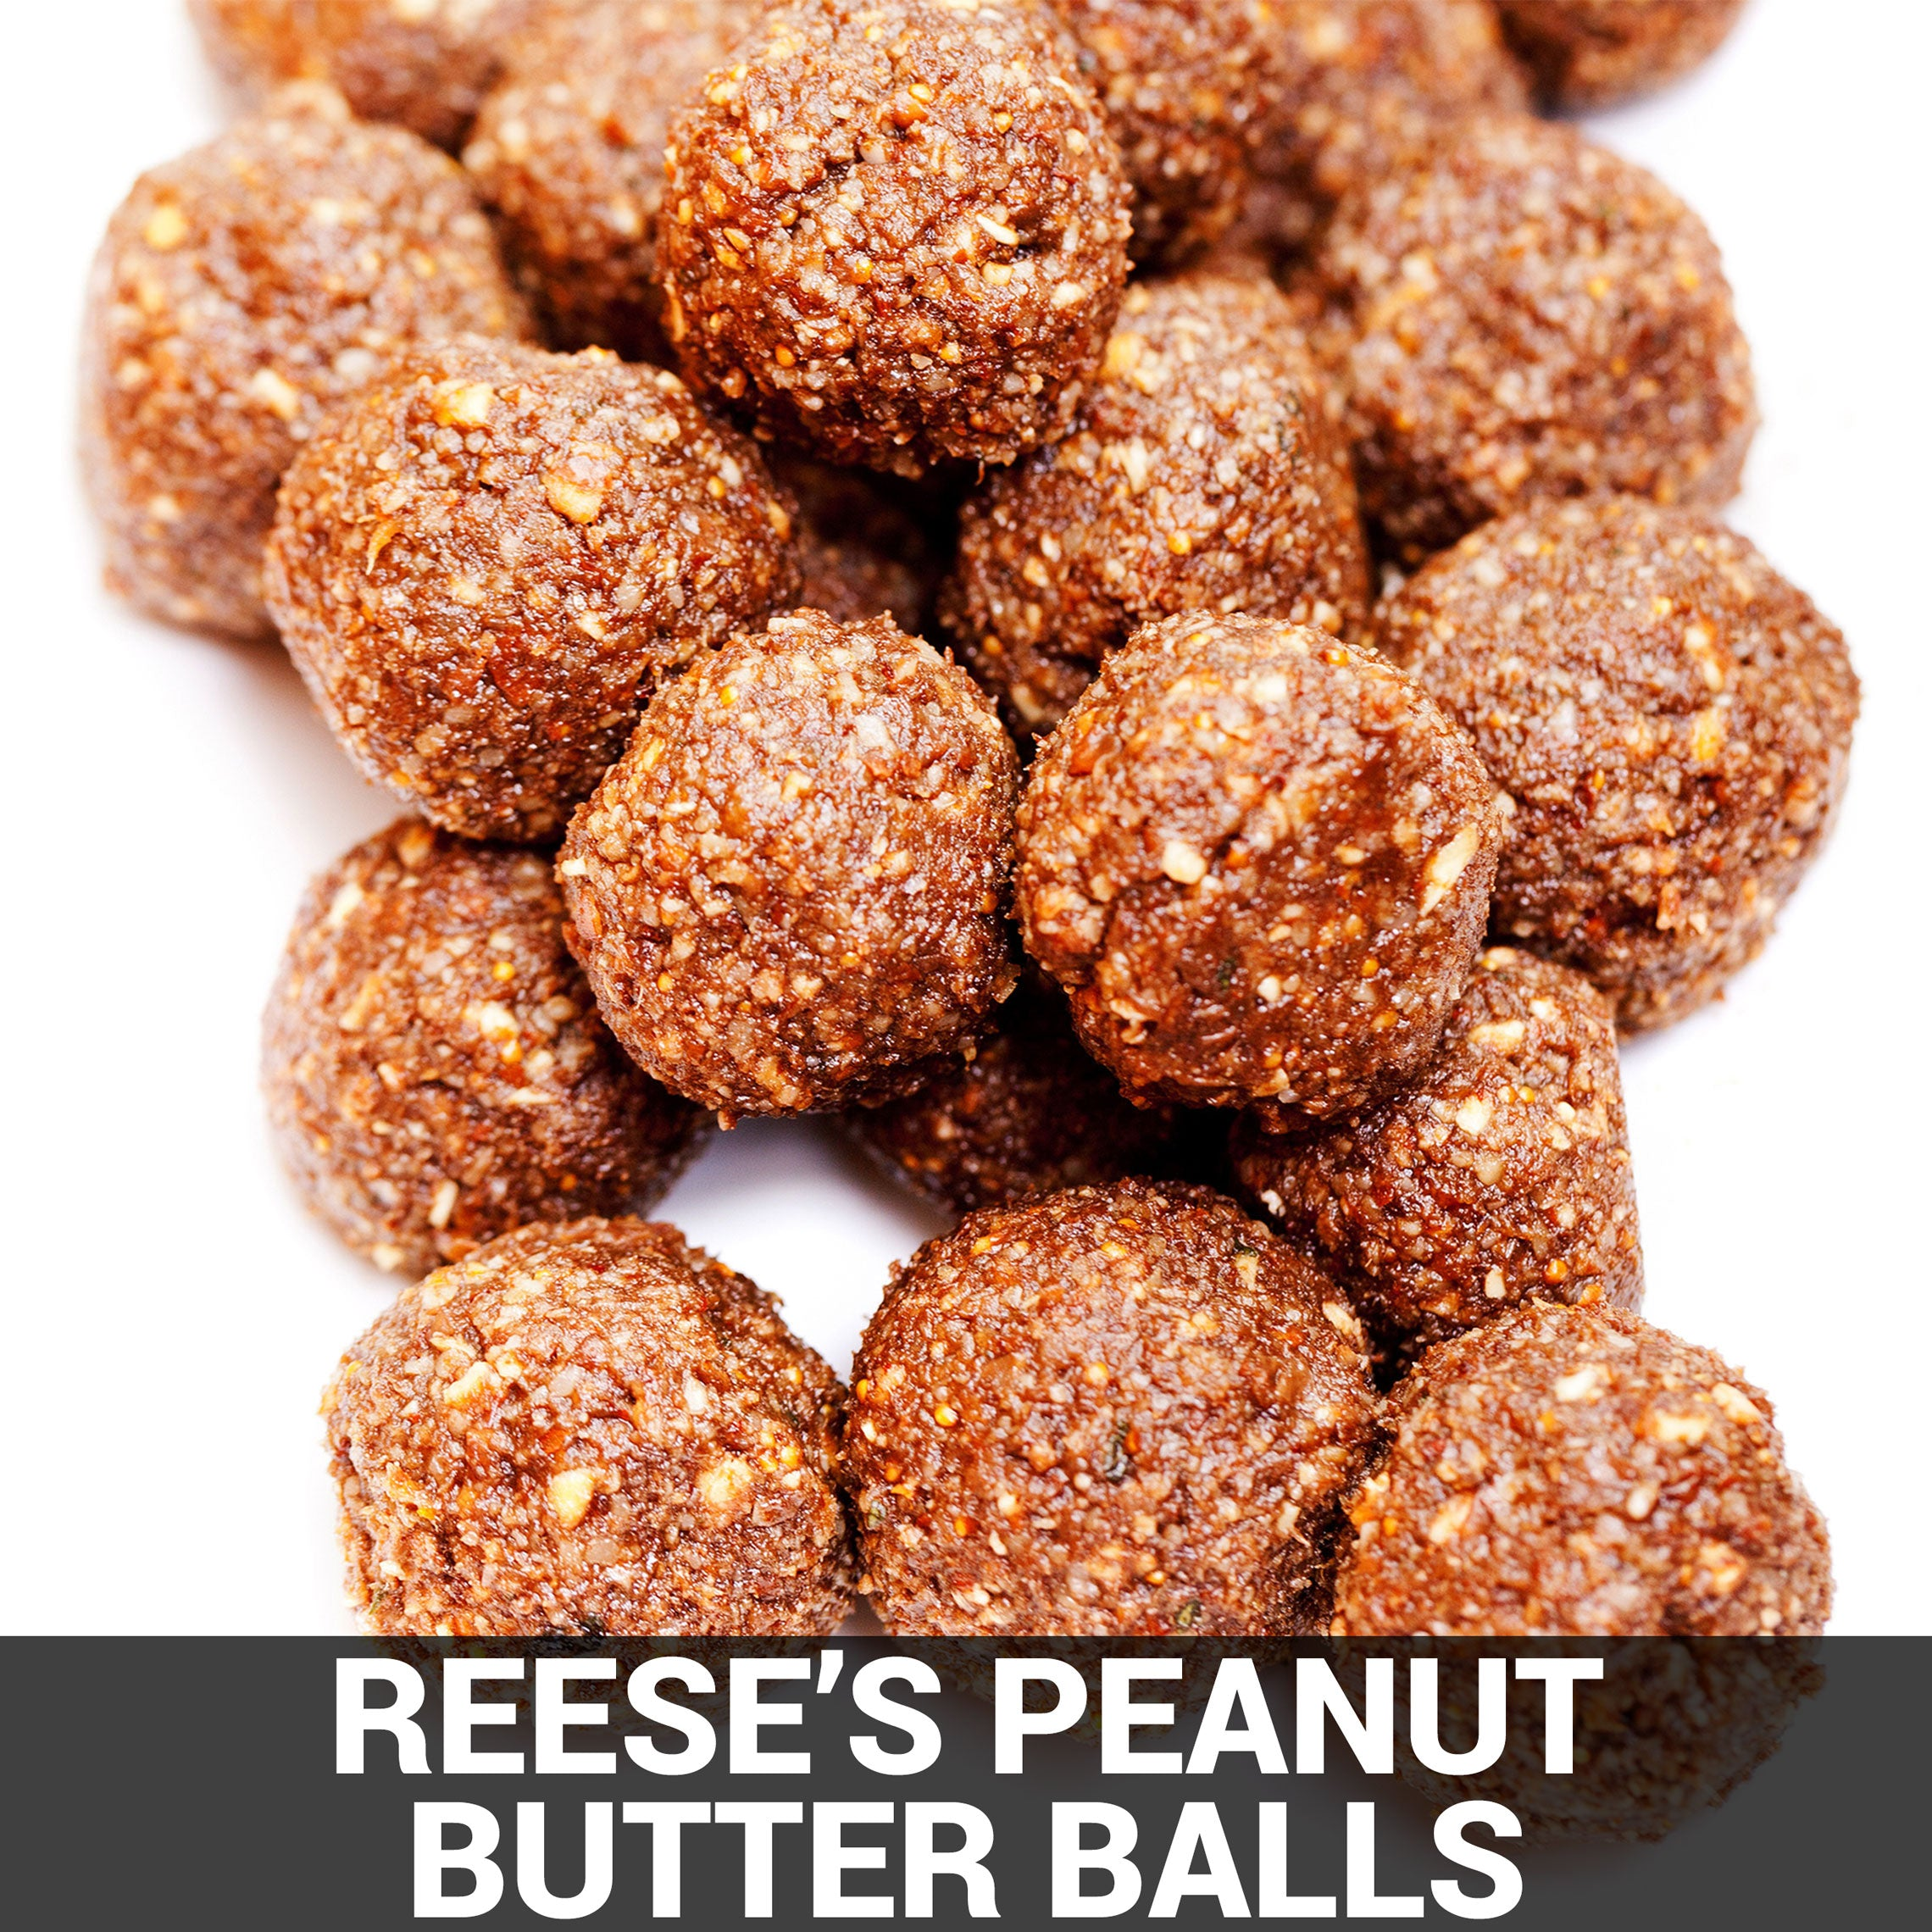 Reeses Peanut Butter Balls Recipe - Foods Alive